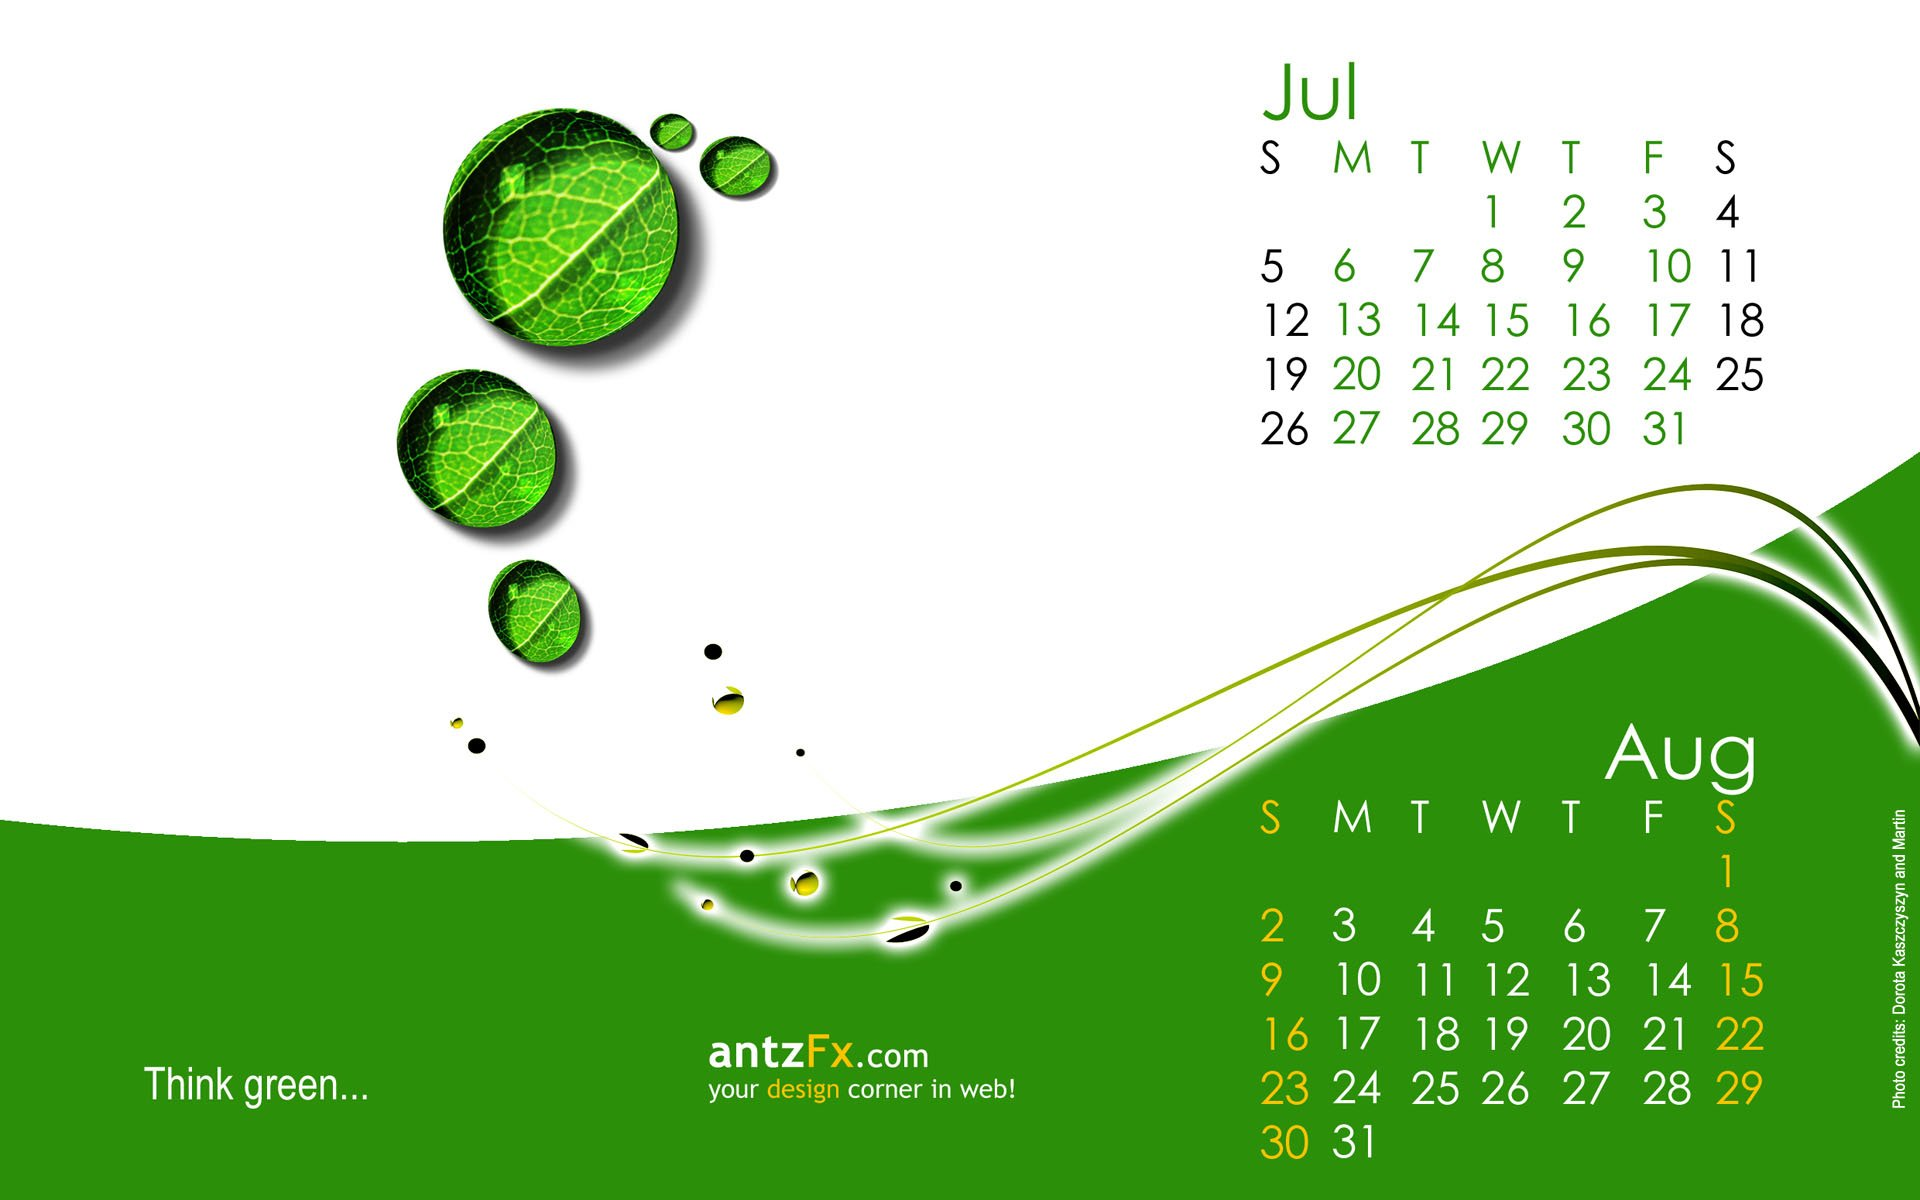 august backgrounds screensavers background 1920x1200 1920x1200